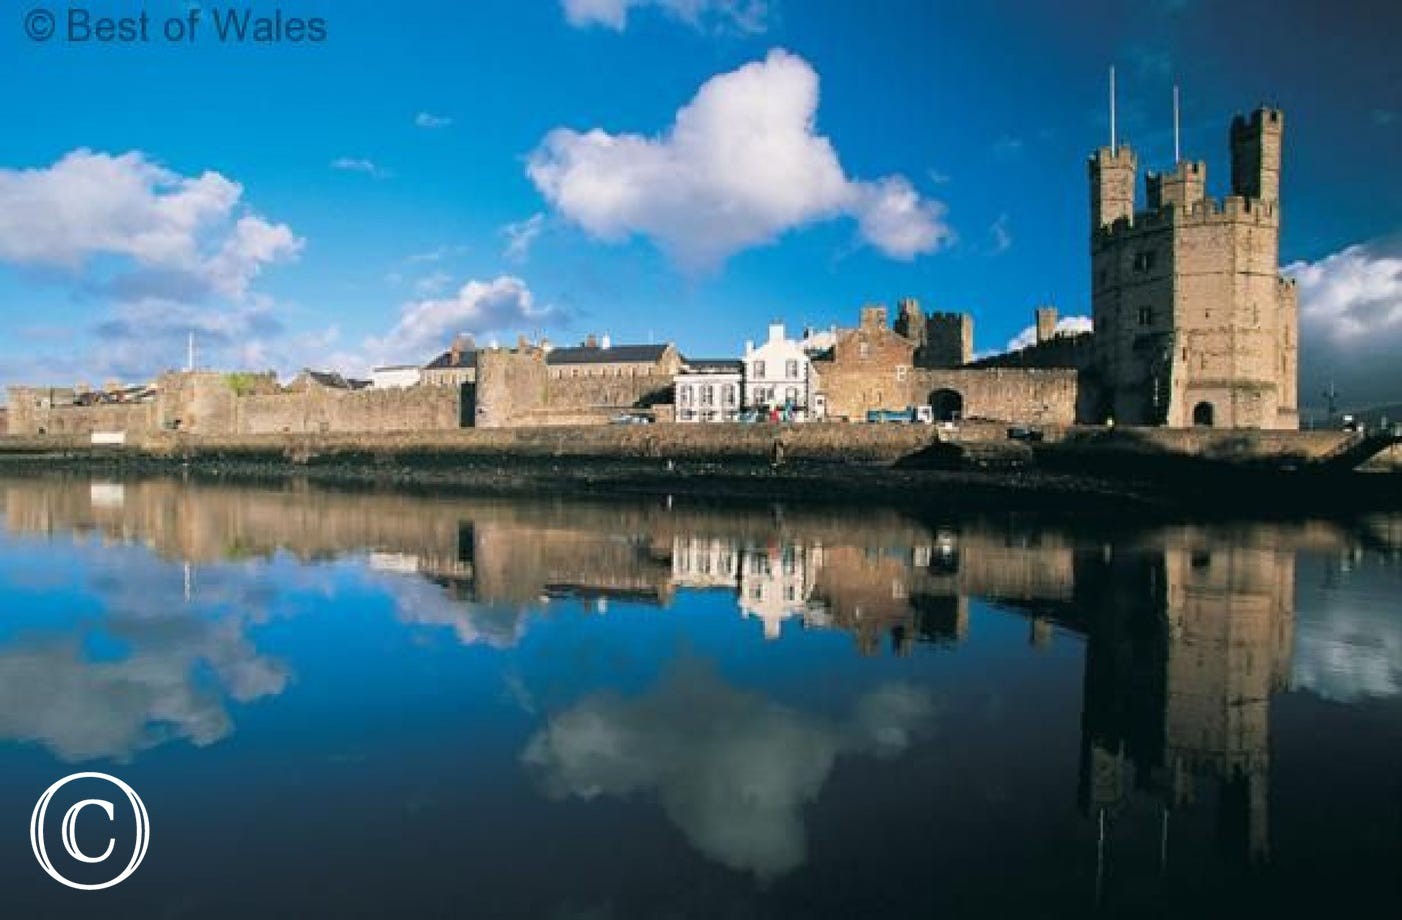 The castle at Caernarfon, a lovely Welsh town 12 miles north